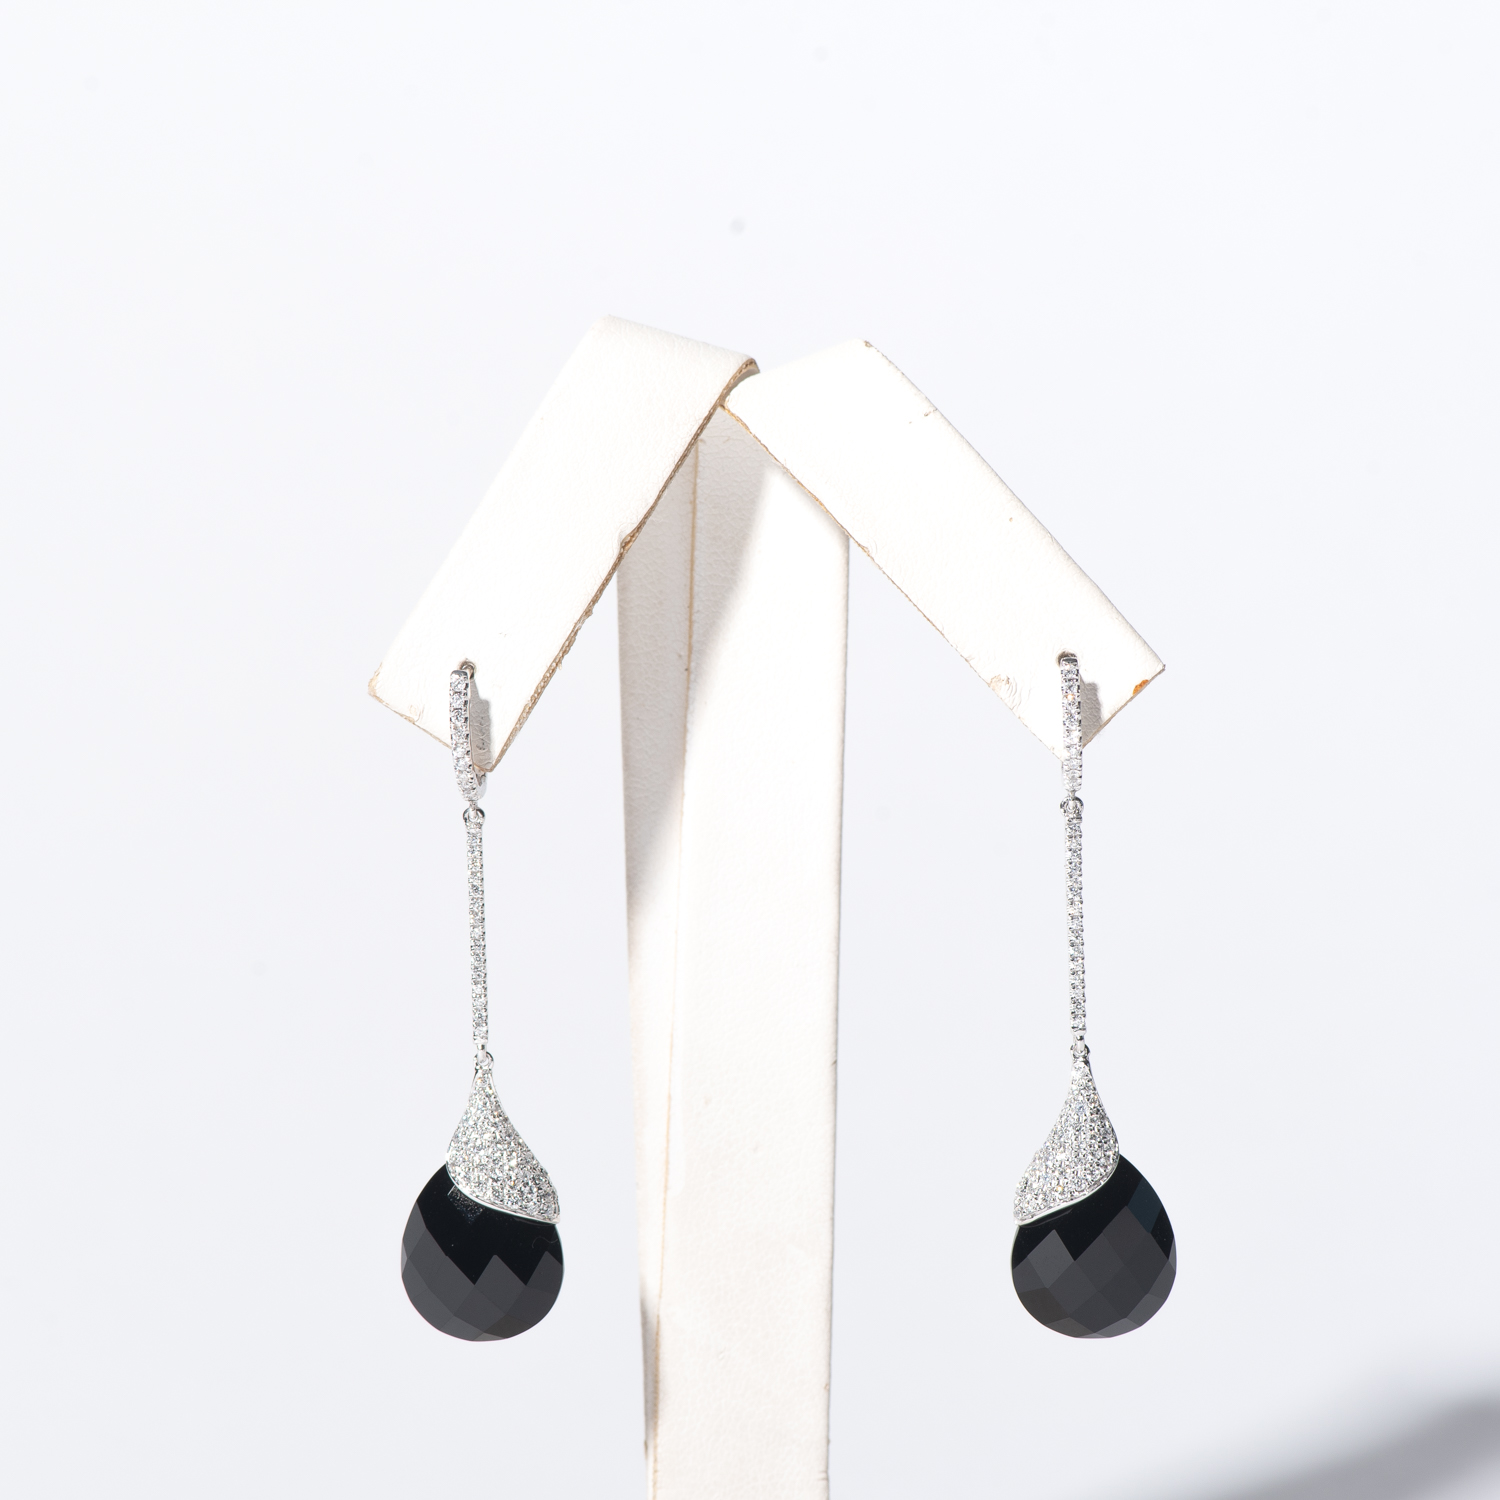 Design Two.  - 14K White Gold Onyx and Diamond Drop Earrings.